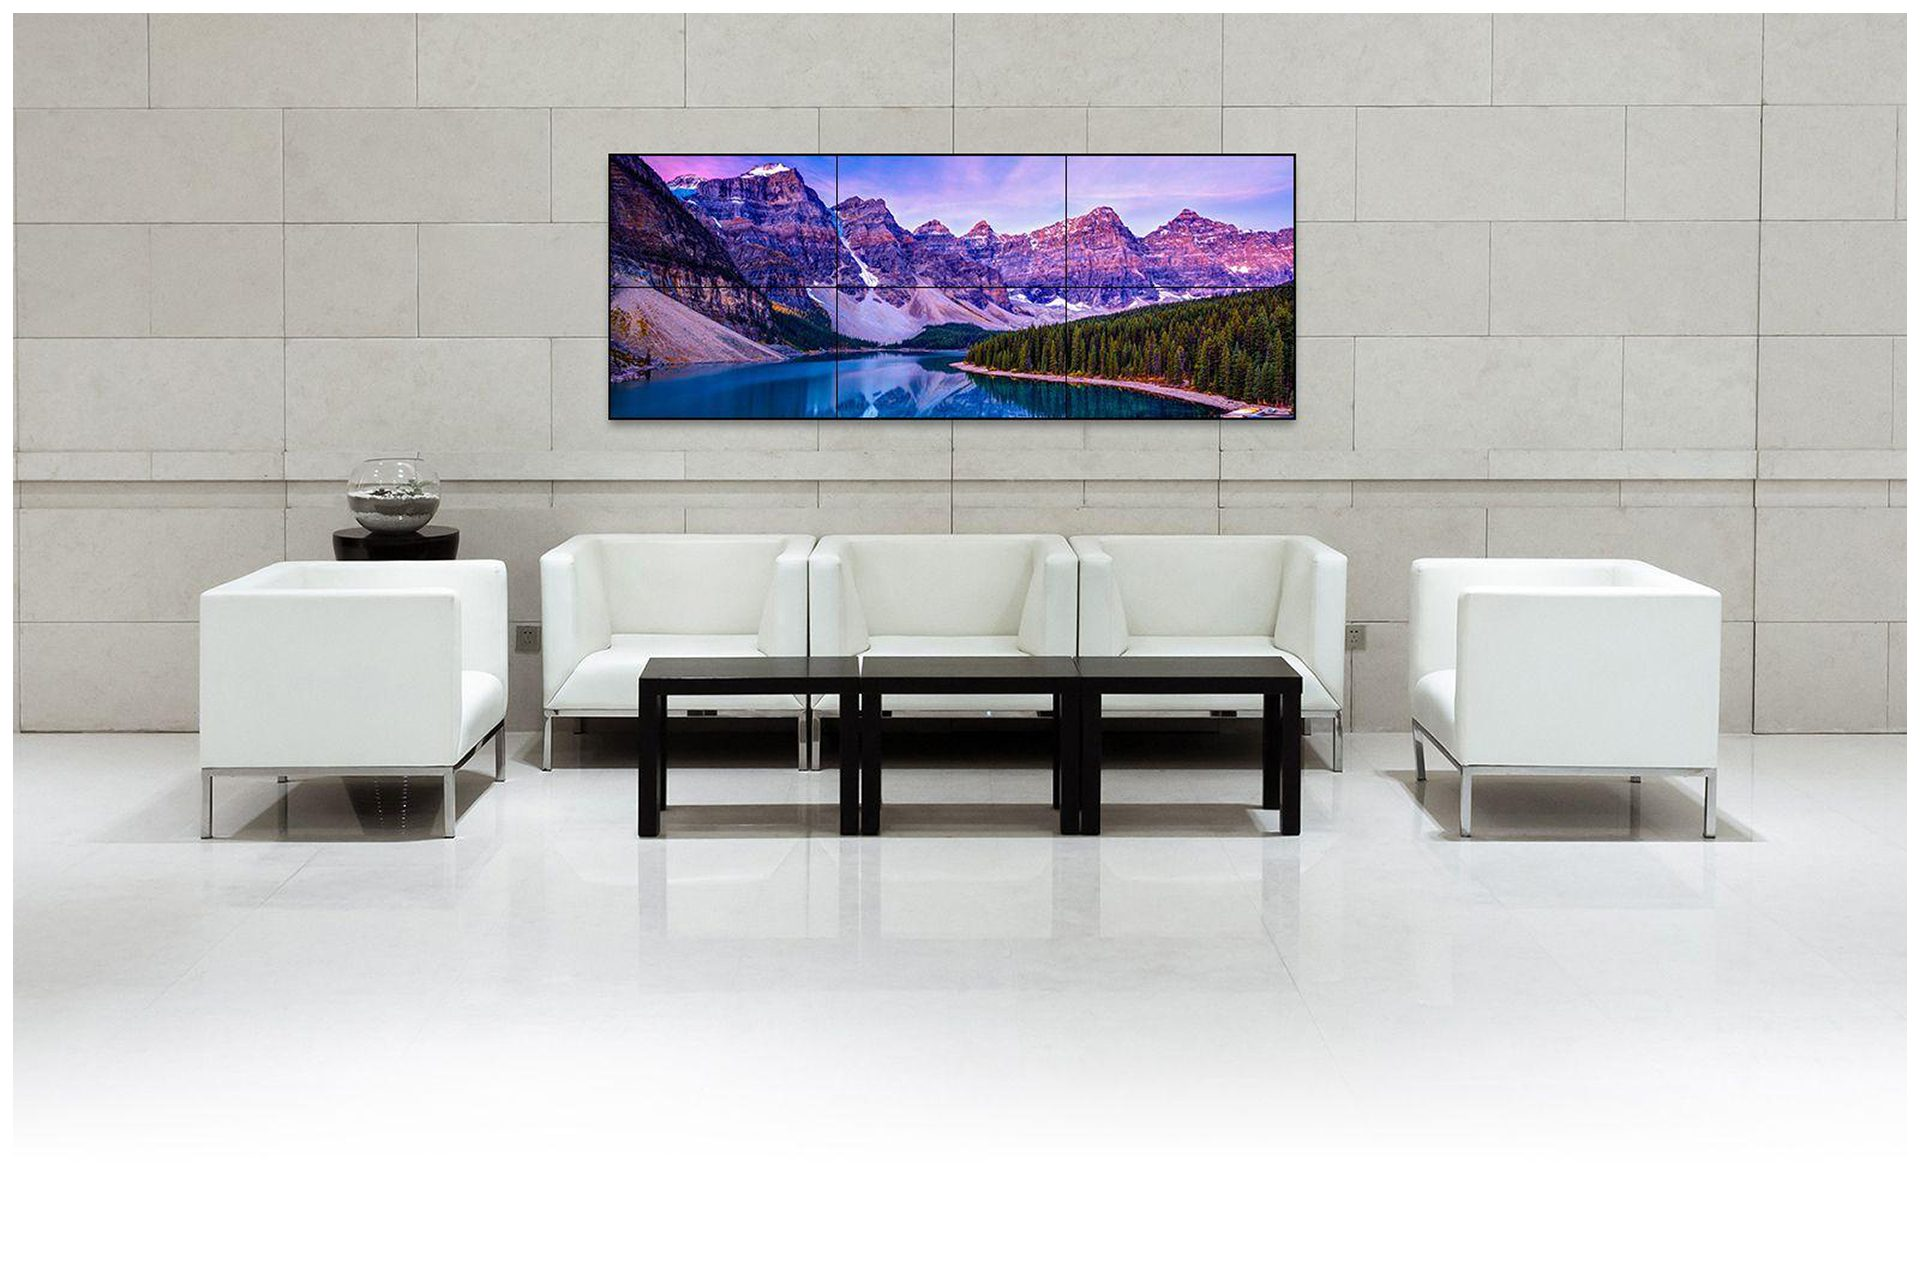 VIDEO WALL DIGITAL SIGNAGE FOR LOBBY PICTURE DISPLAYS  Above Custom size 3x2 Video Wall Display Signage delivers wide format photo slides for a media server.  Photos can be changed by simply adding new content to a photo folder.